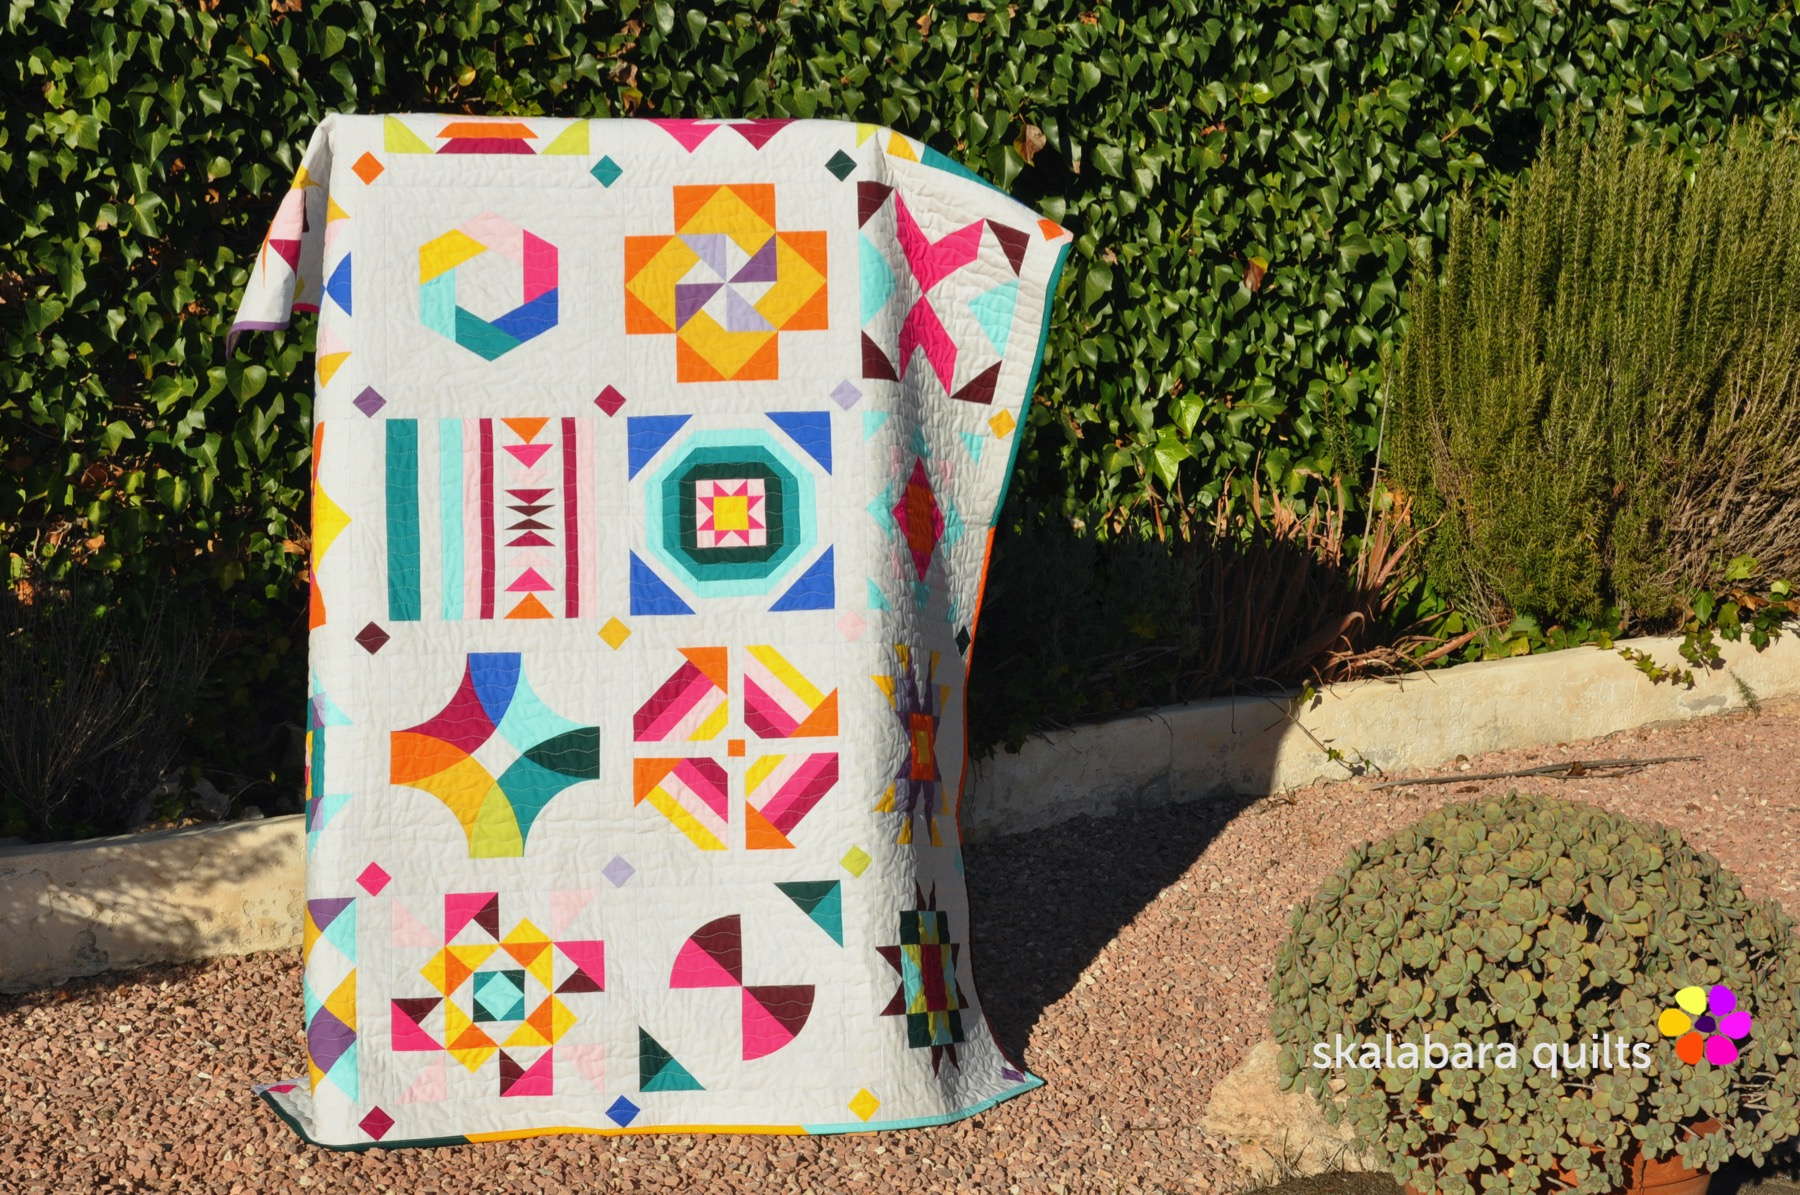 21 summer sampler 2020 2 - skalabara quilts